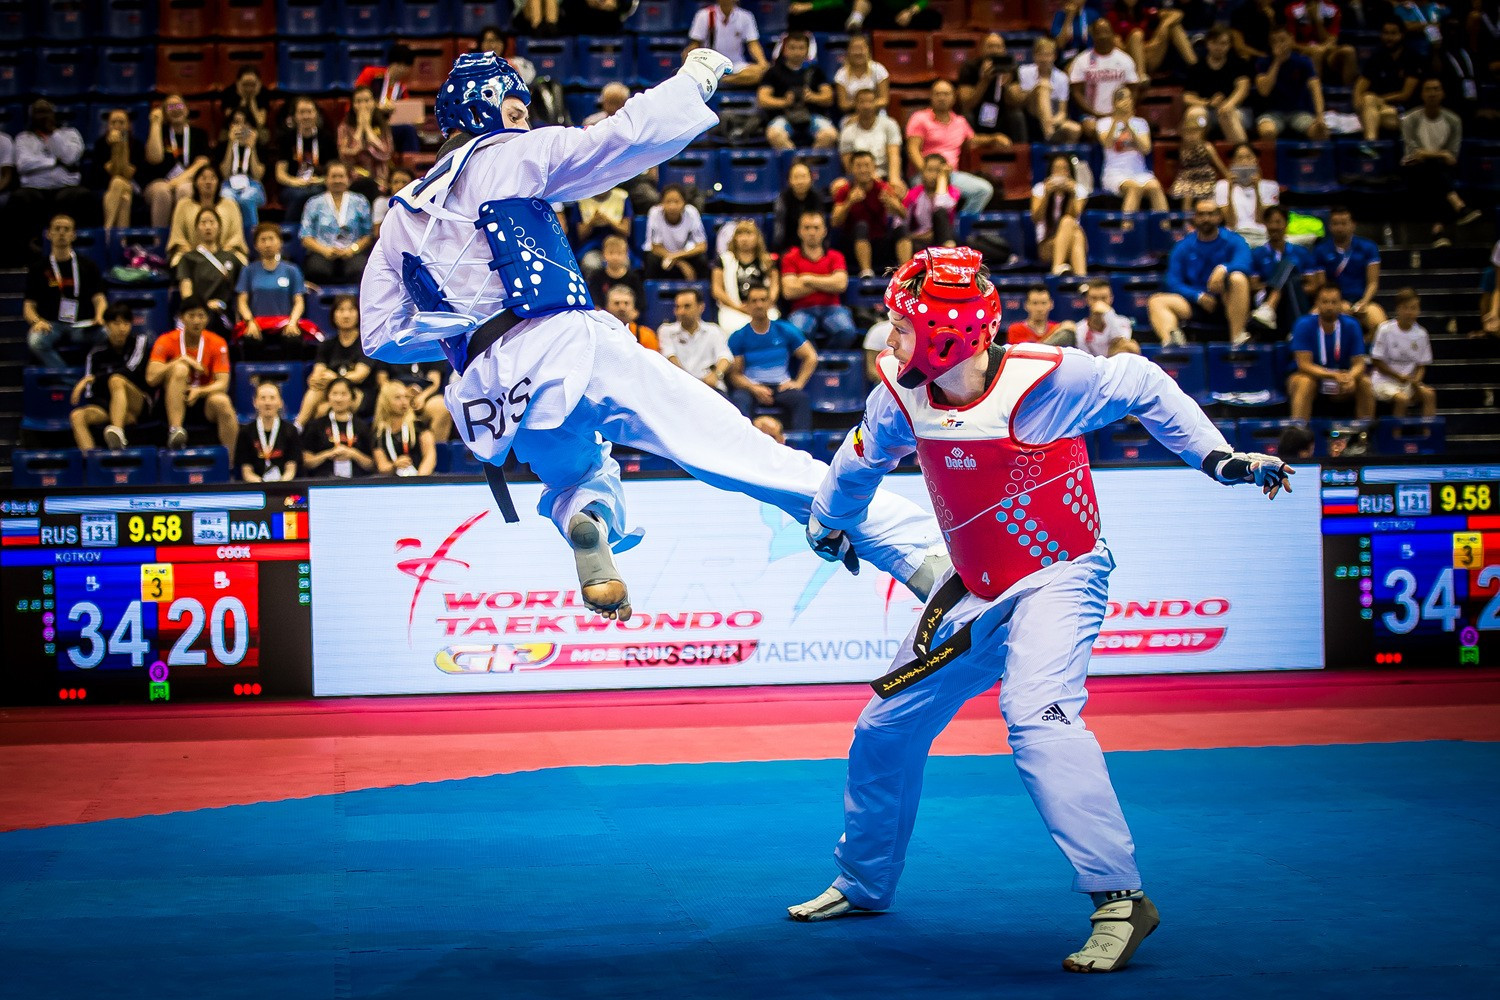 Kotkov overcomes Cook to claim thrilling gold medal at World Taekwondo Grand Prix in Moscow